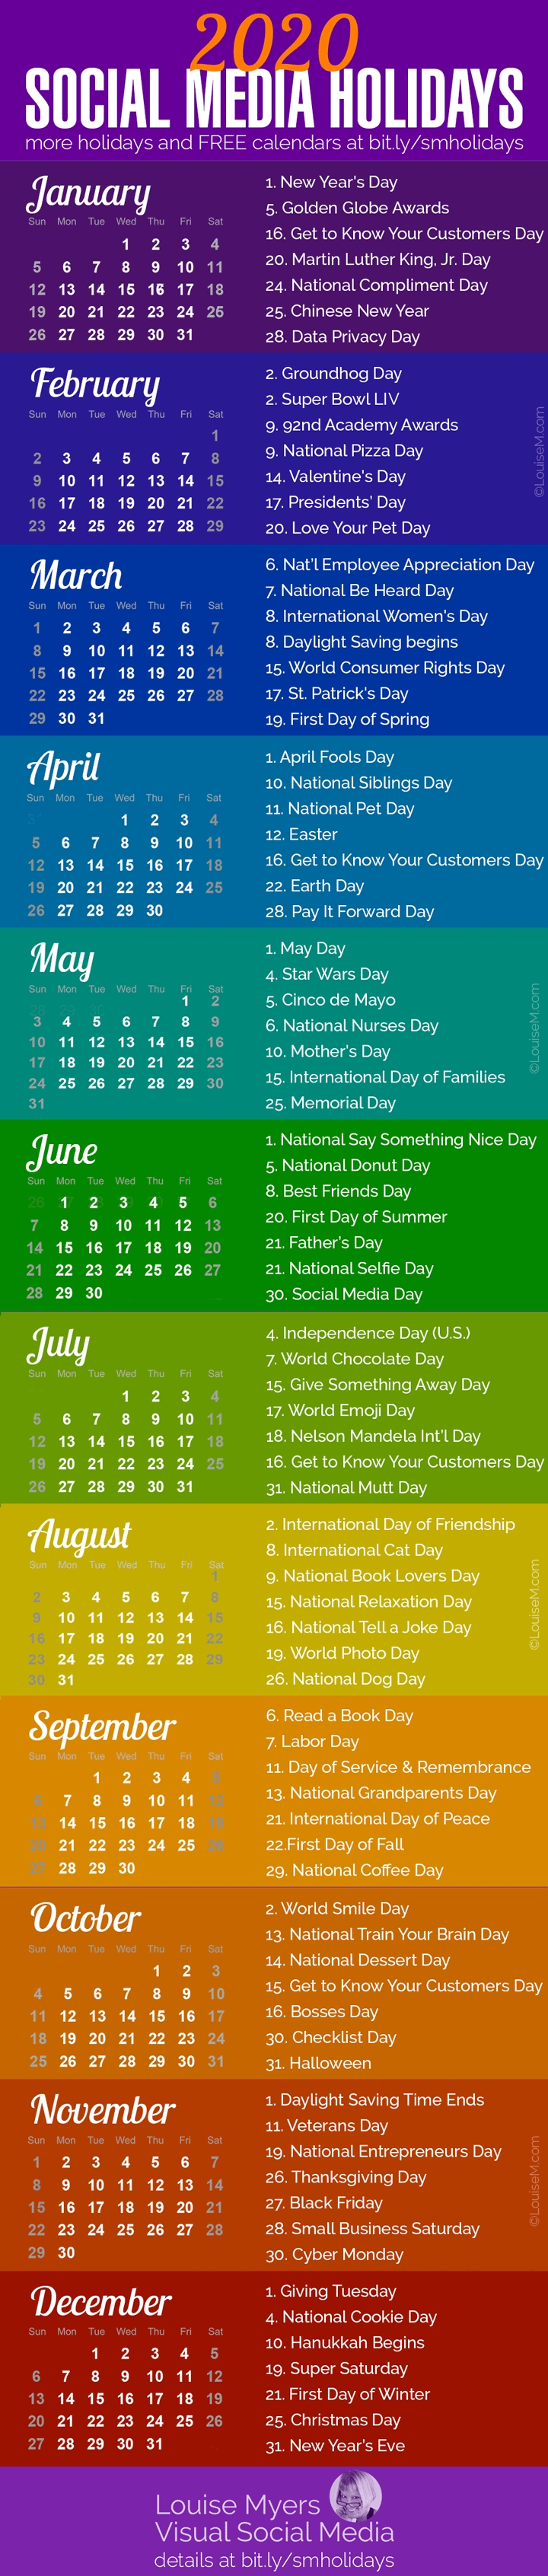 84 Social Media Holidays You Need In 2020: Indispensable! with 2020 Special Days Of The Year